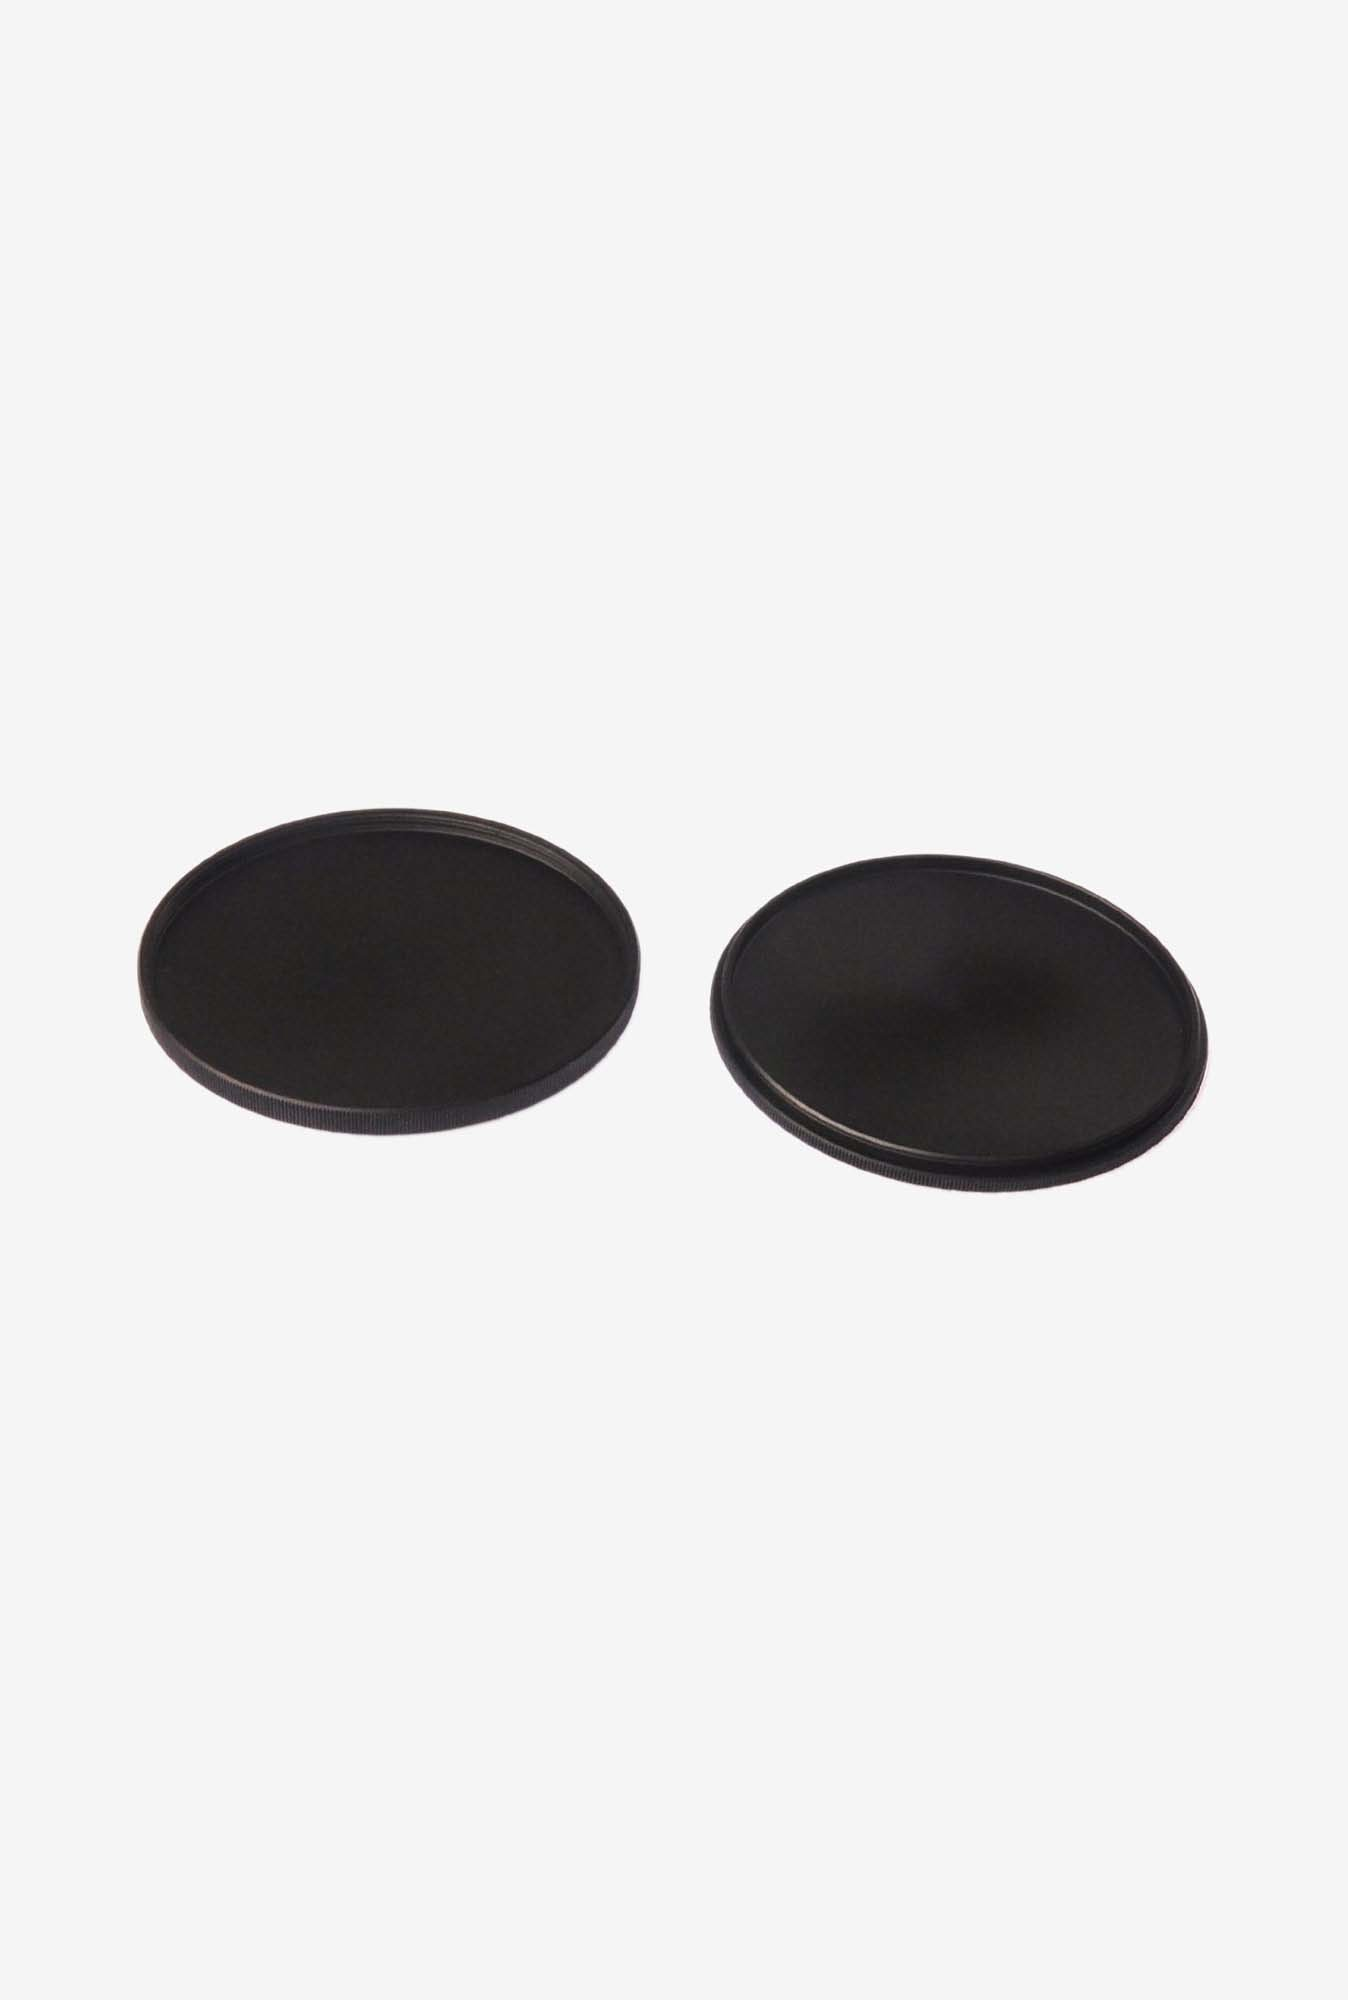 Fotasy MLC 62 mm Camera Filter Stack Caps (Black)